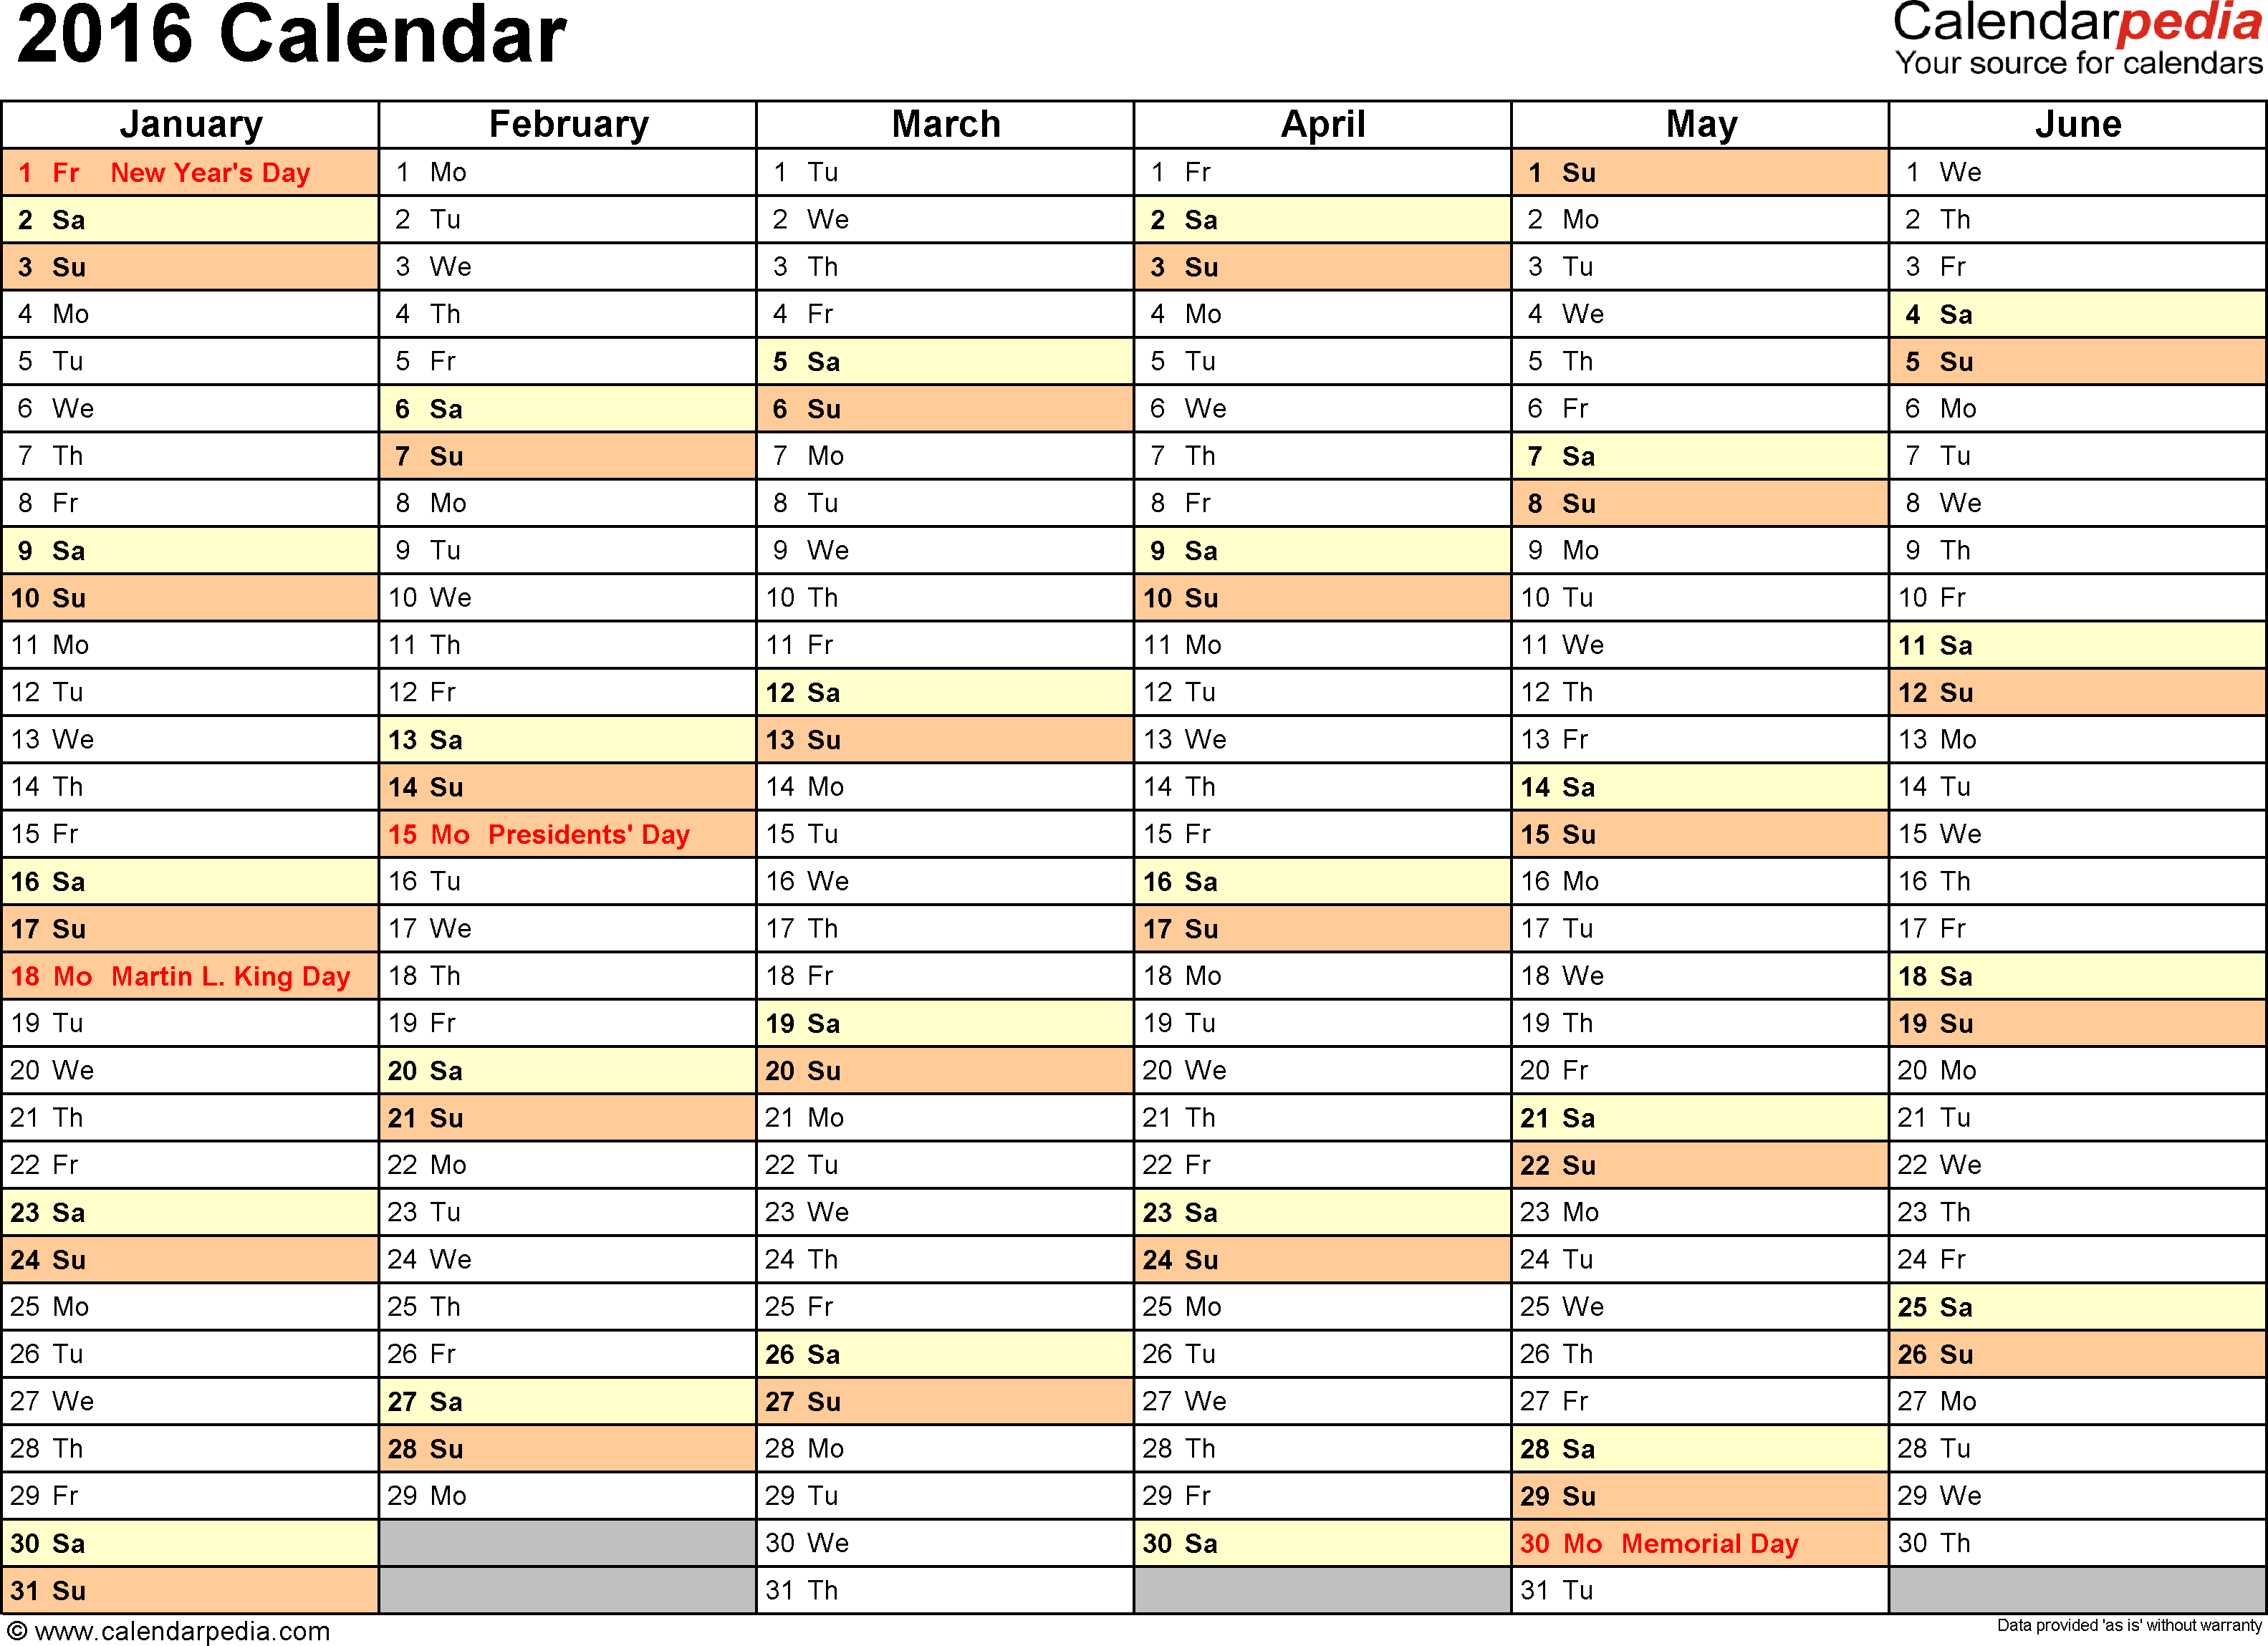 Ediblewildsus  Terrific  Calendar  Download  Free Printable Excel Templates Xls With Foxy Template   Calendar For Excel Months Horizontally  Pages Landscape Orientation With Extraordinary Excel Extract Number From Text Also Excel Countif Two Criteria In Addition Excel Prep Academy And Not Enough Memory To Run Microsoft Excel As Well As Excel Day Of Week Function Additionally Format Dates In Excel From Calendarpediacom With Ediblewildsus  Foxy  Calendar  Download  Free Printable Excel Templates Xls With Extraordinary Template   Calendar For Excel Months Horizontally  Pages Landscape Orientation And Terrific Excel Extract Number From Text Also Excel Countif Two Criteria In Addition Excel Prep Academy From Calendarpediacom